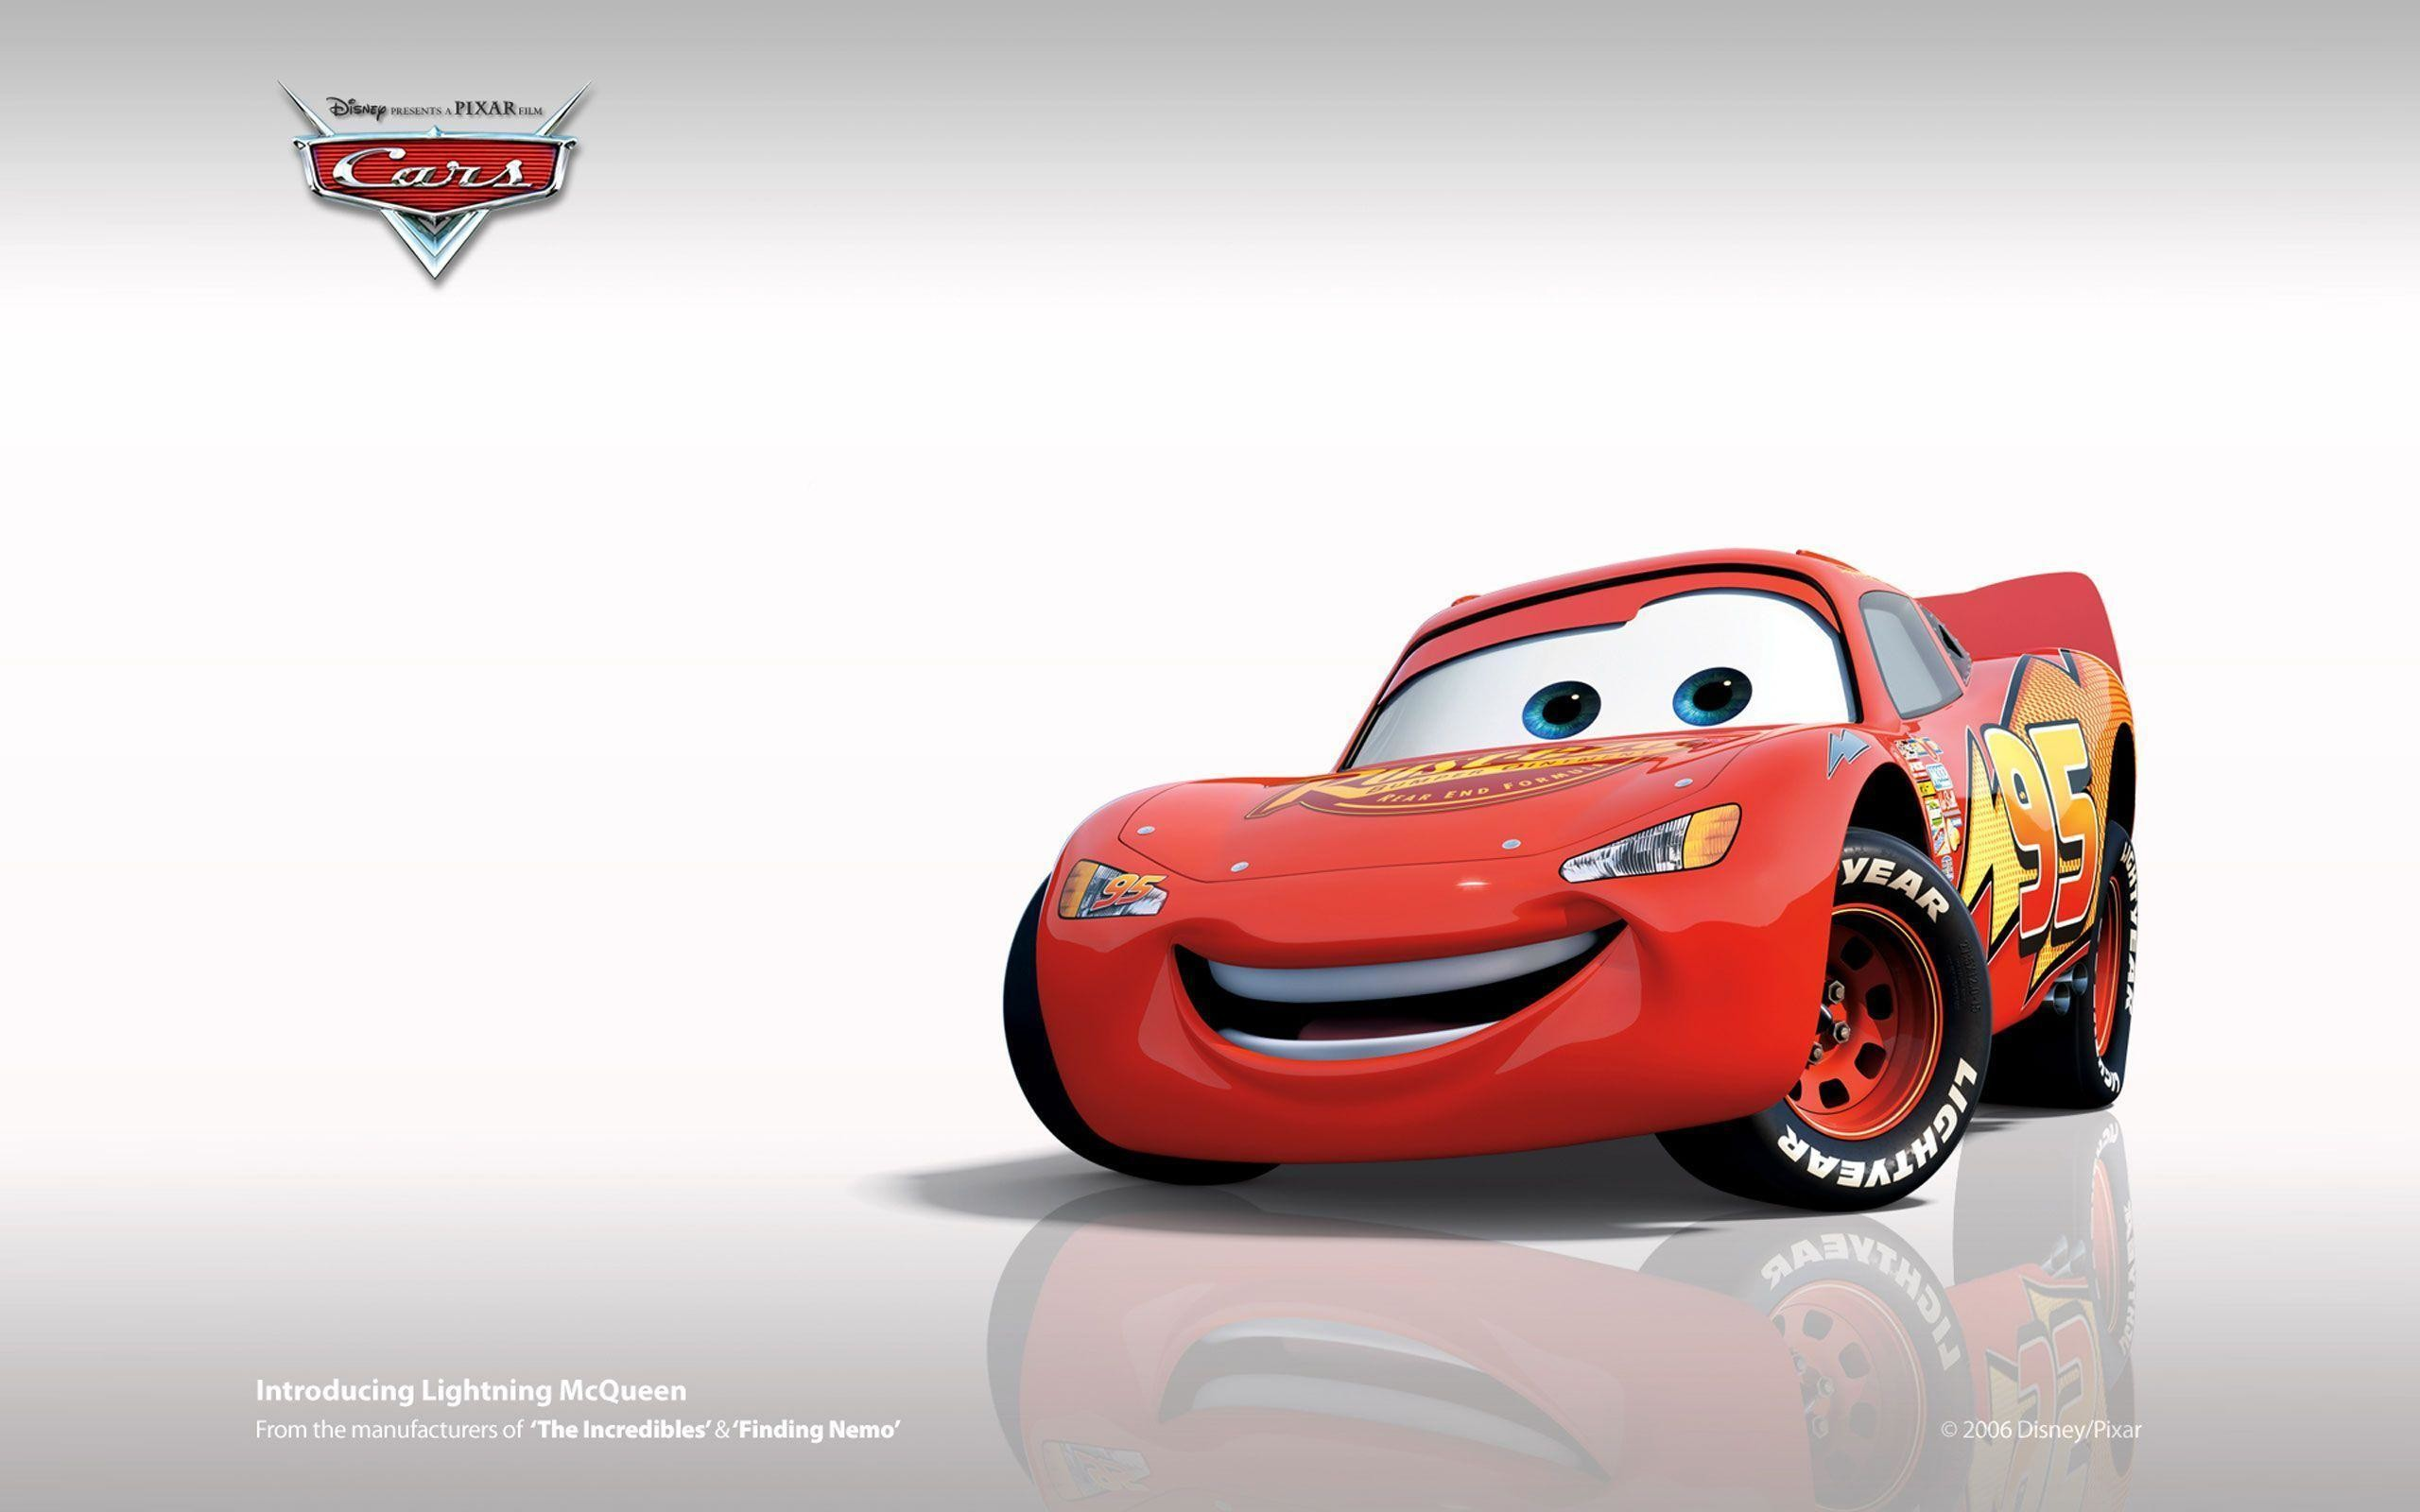 2560x1600 - Wallpaper Cars Cartoon 2